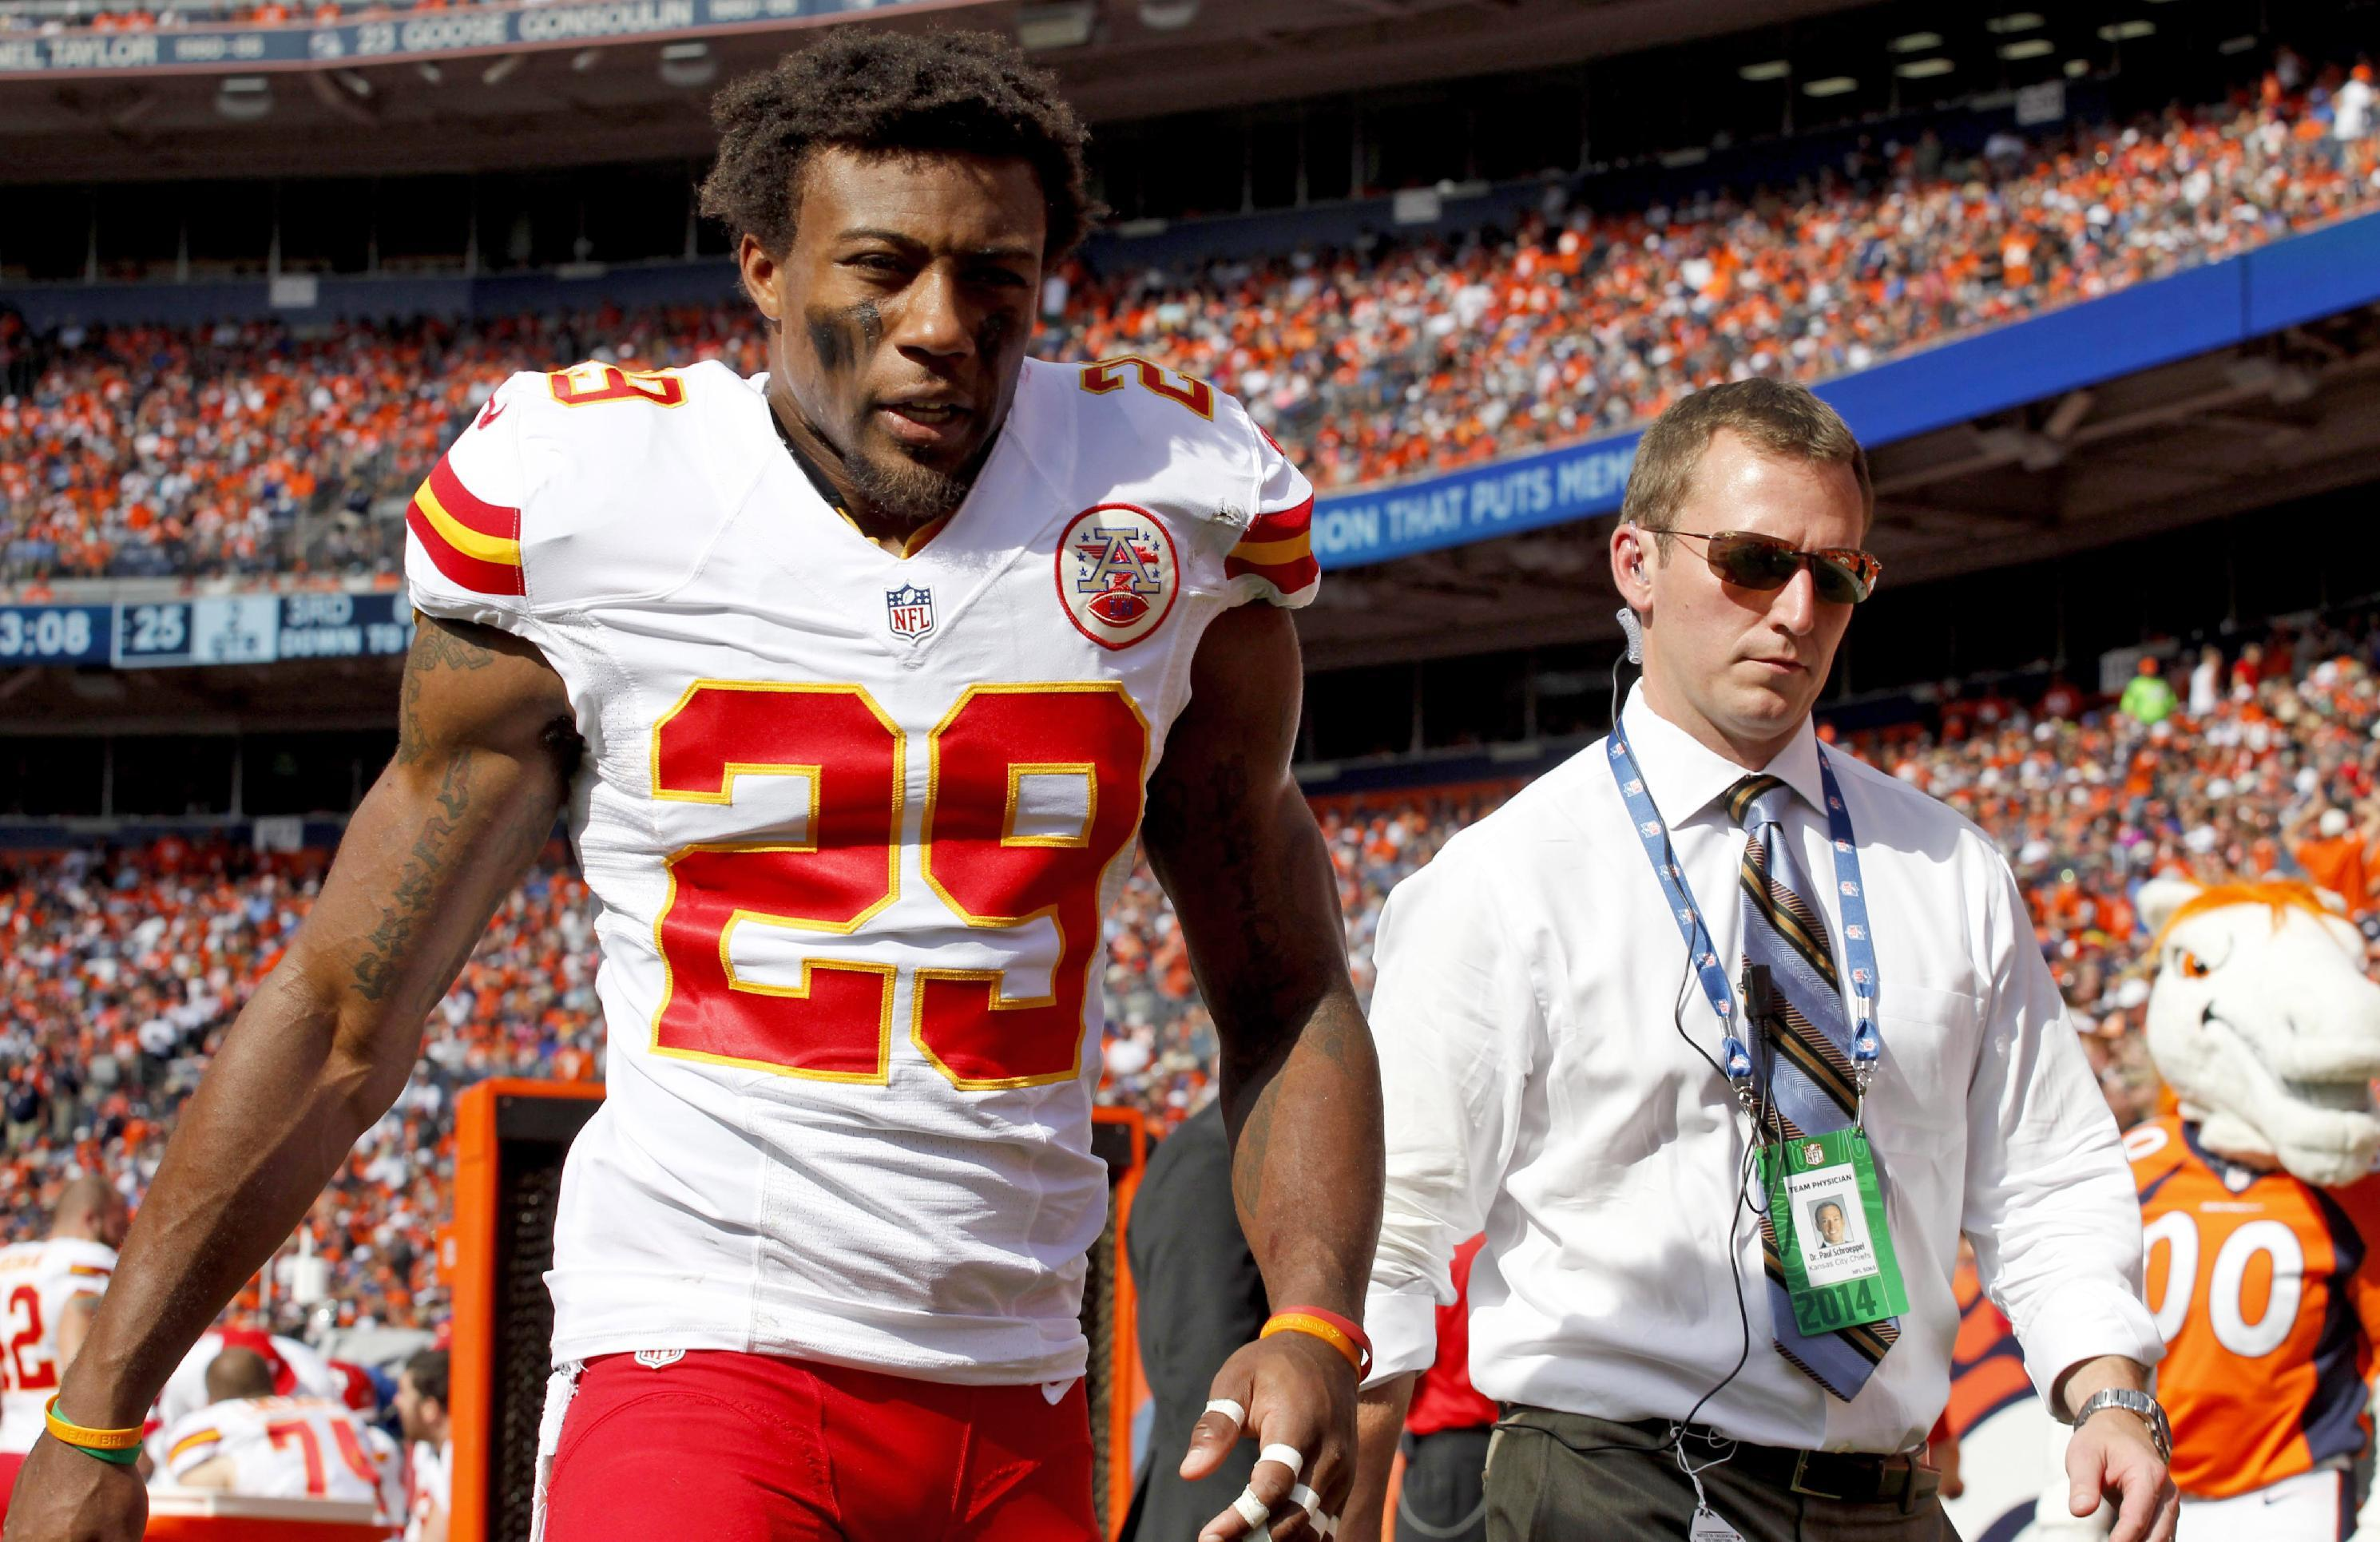 Andy Reid says Eric Berry has completed cancer treatments